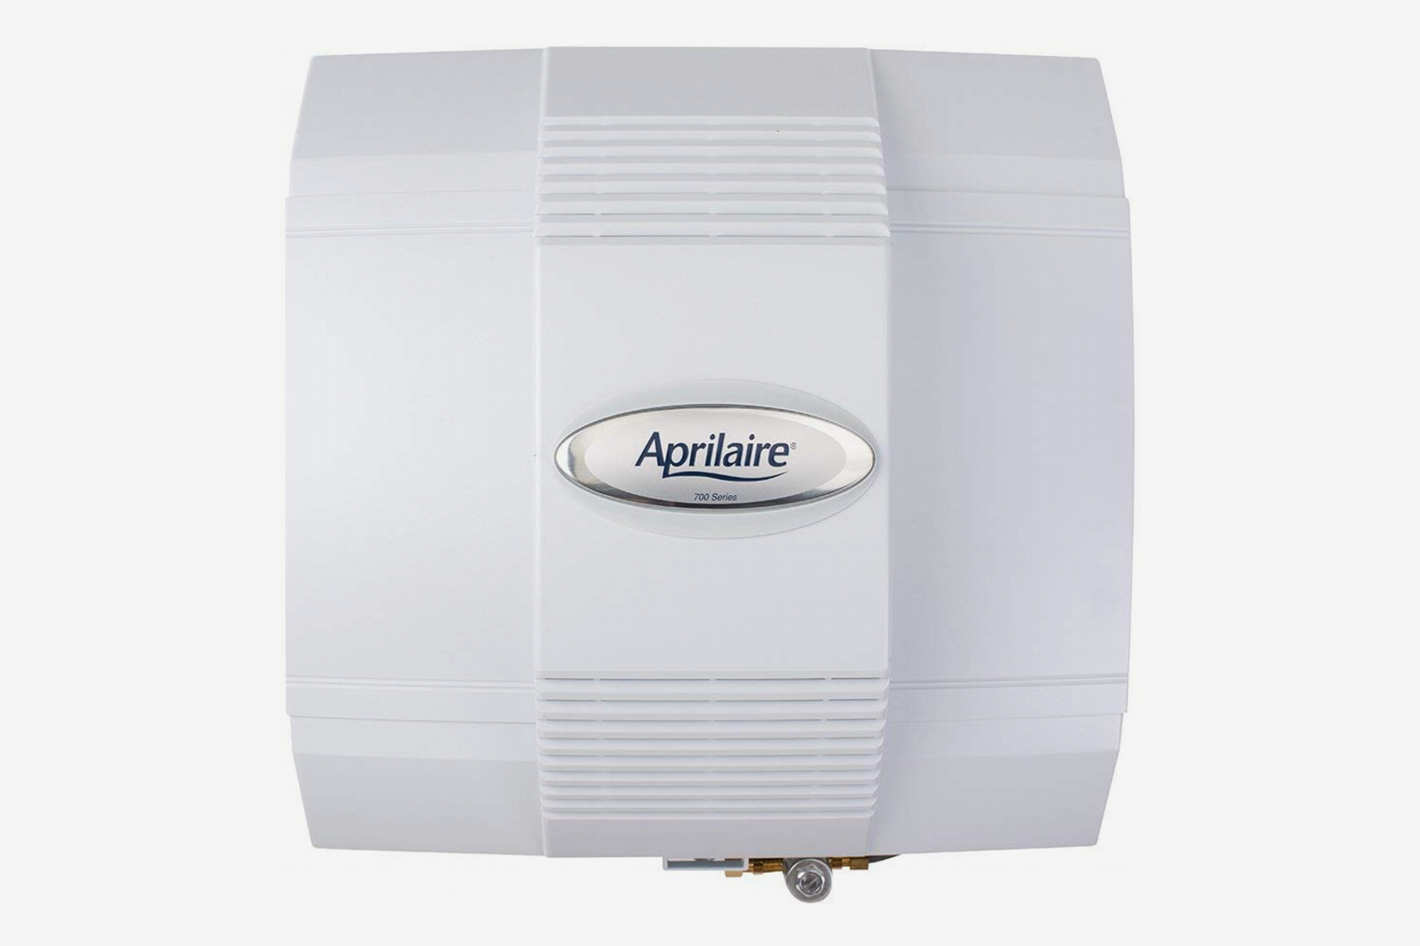 Aprilaire Model 700 Automatic Whole House Power Furnace Humidifier